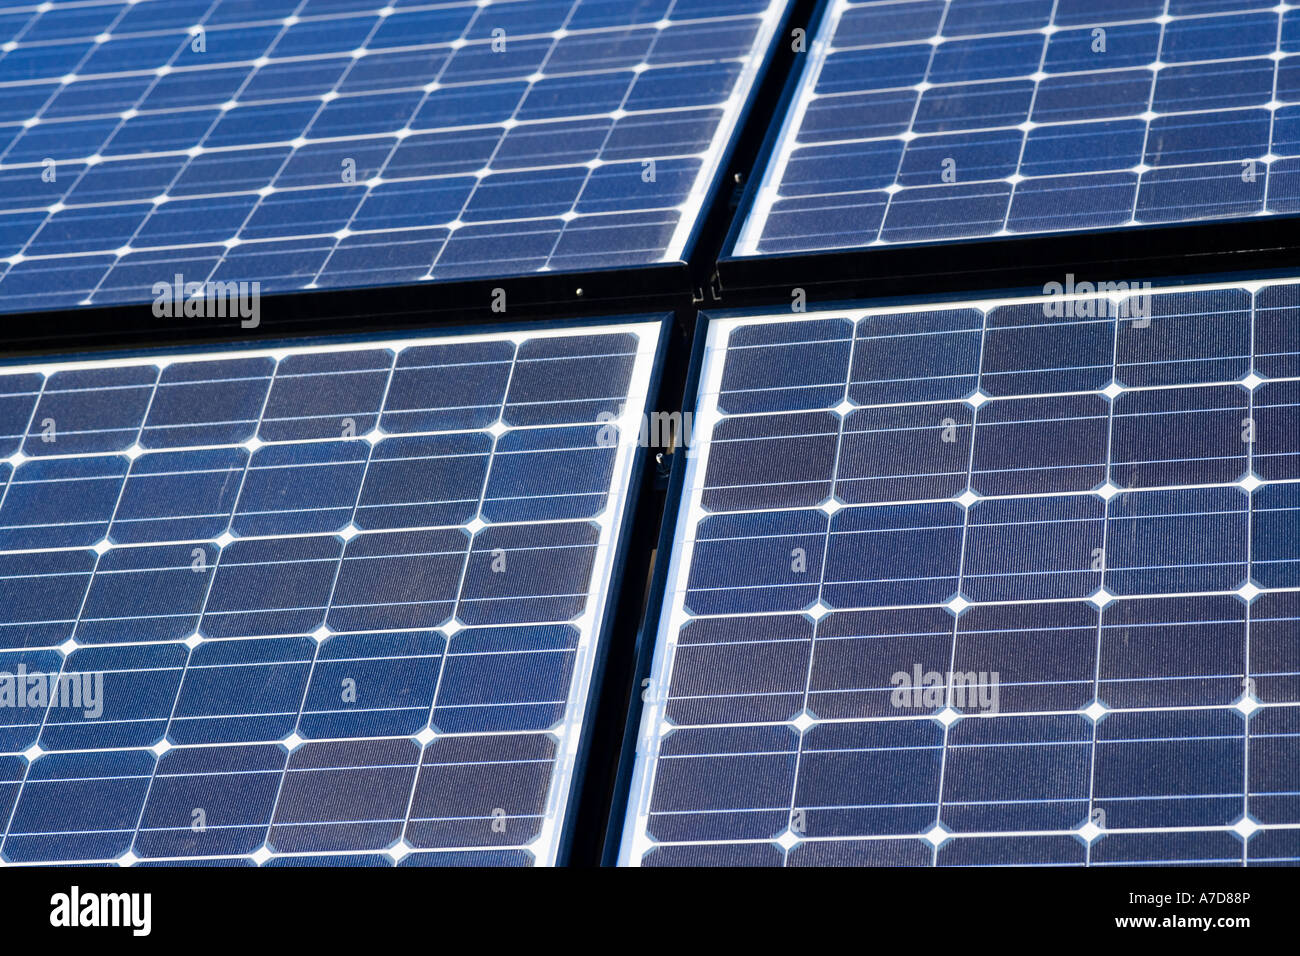 Array of solar panels producing electricity. Rows of monocrystalline photovoltaic solar cells. - Stock Image